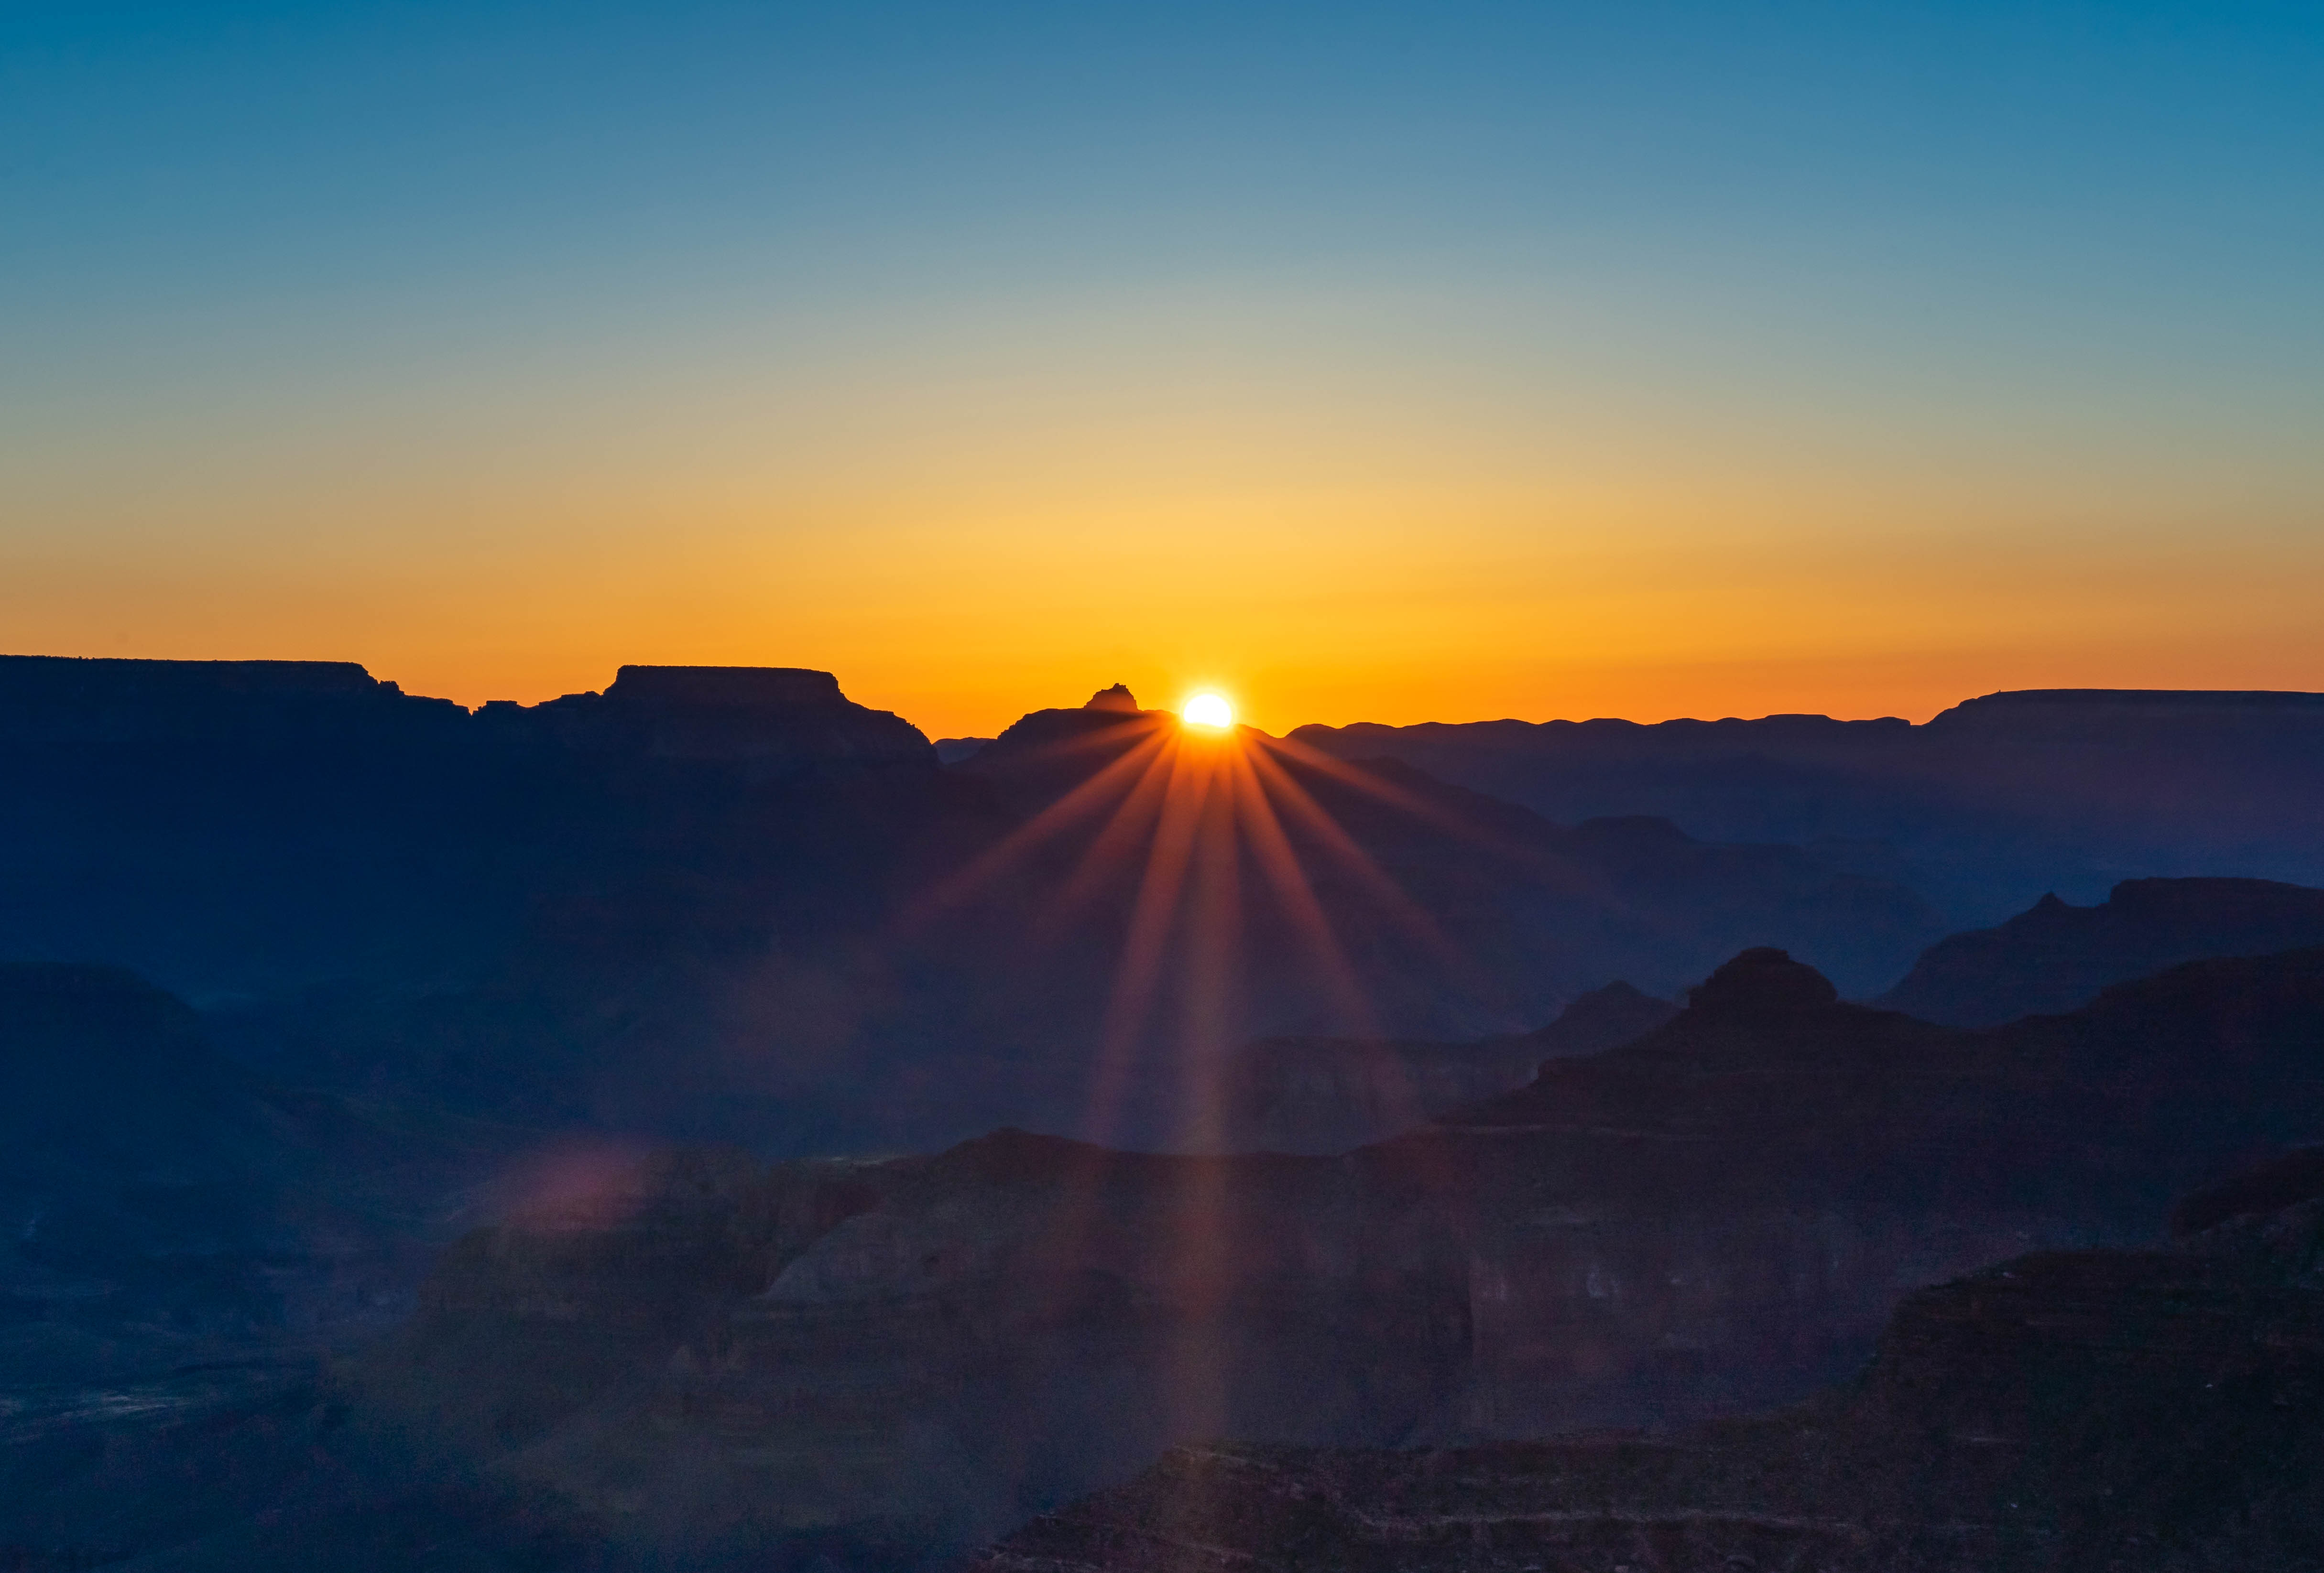 Sunrise over the Grand Canyon from Powell Point